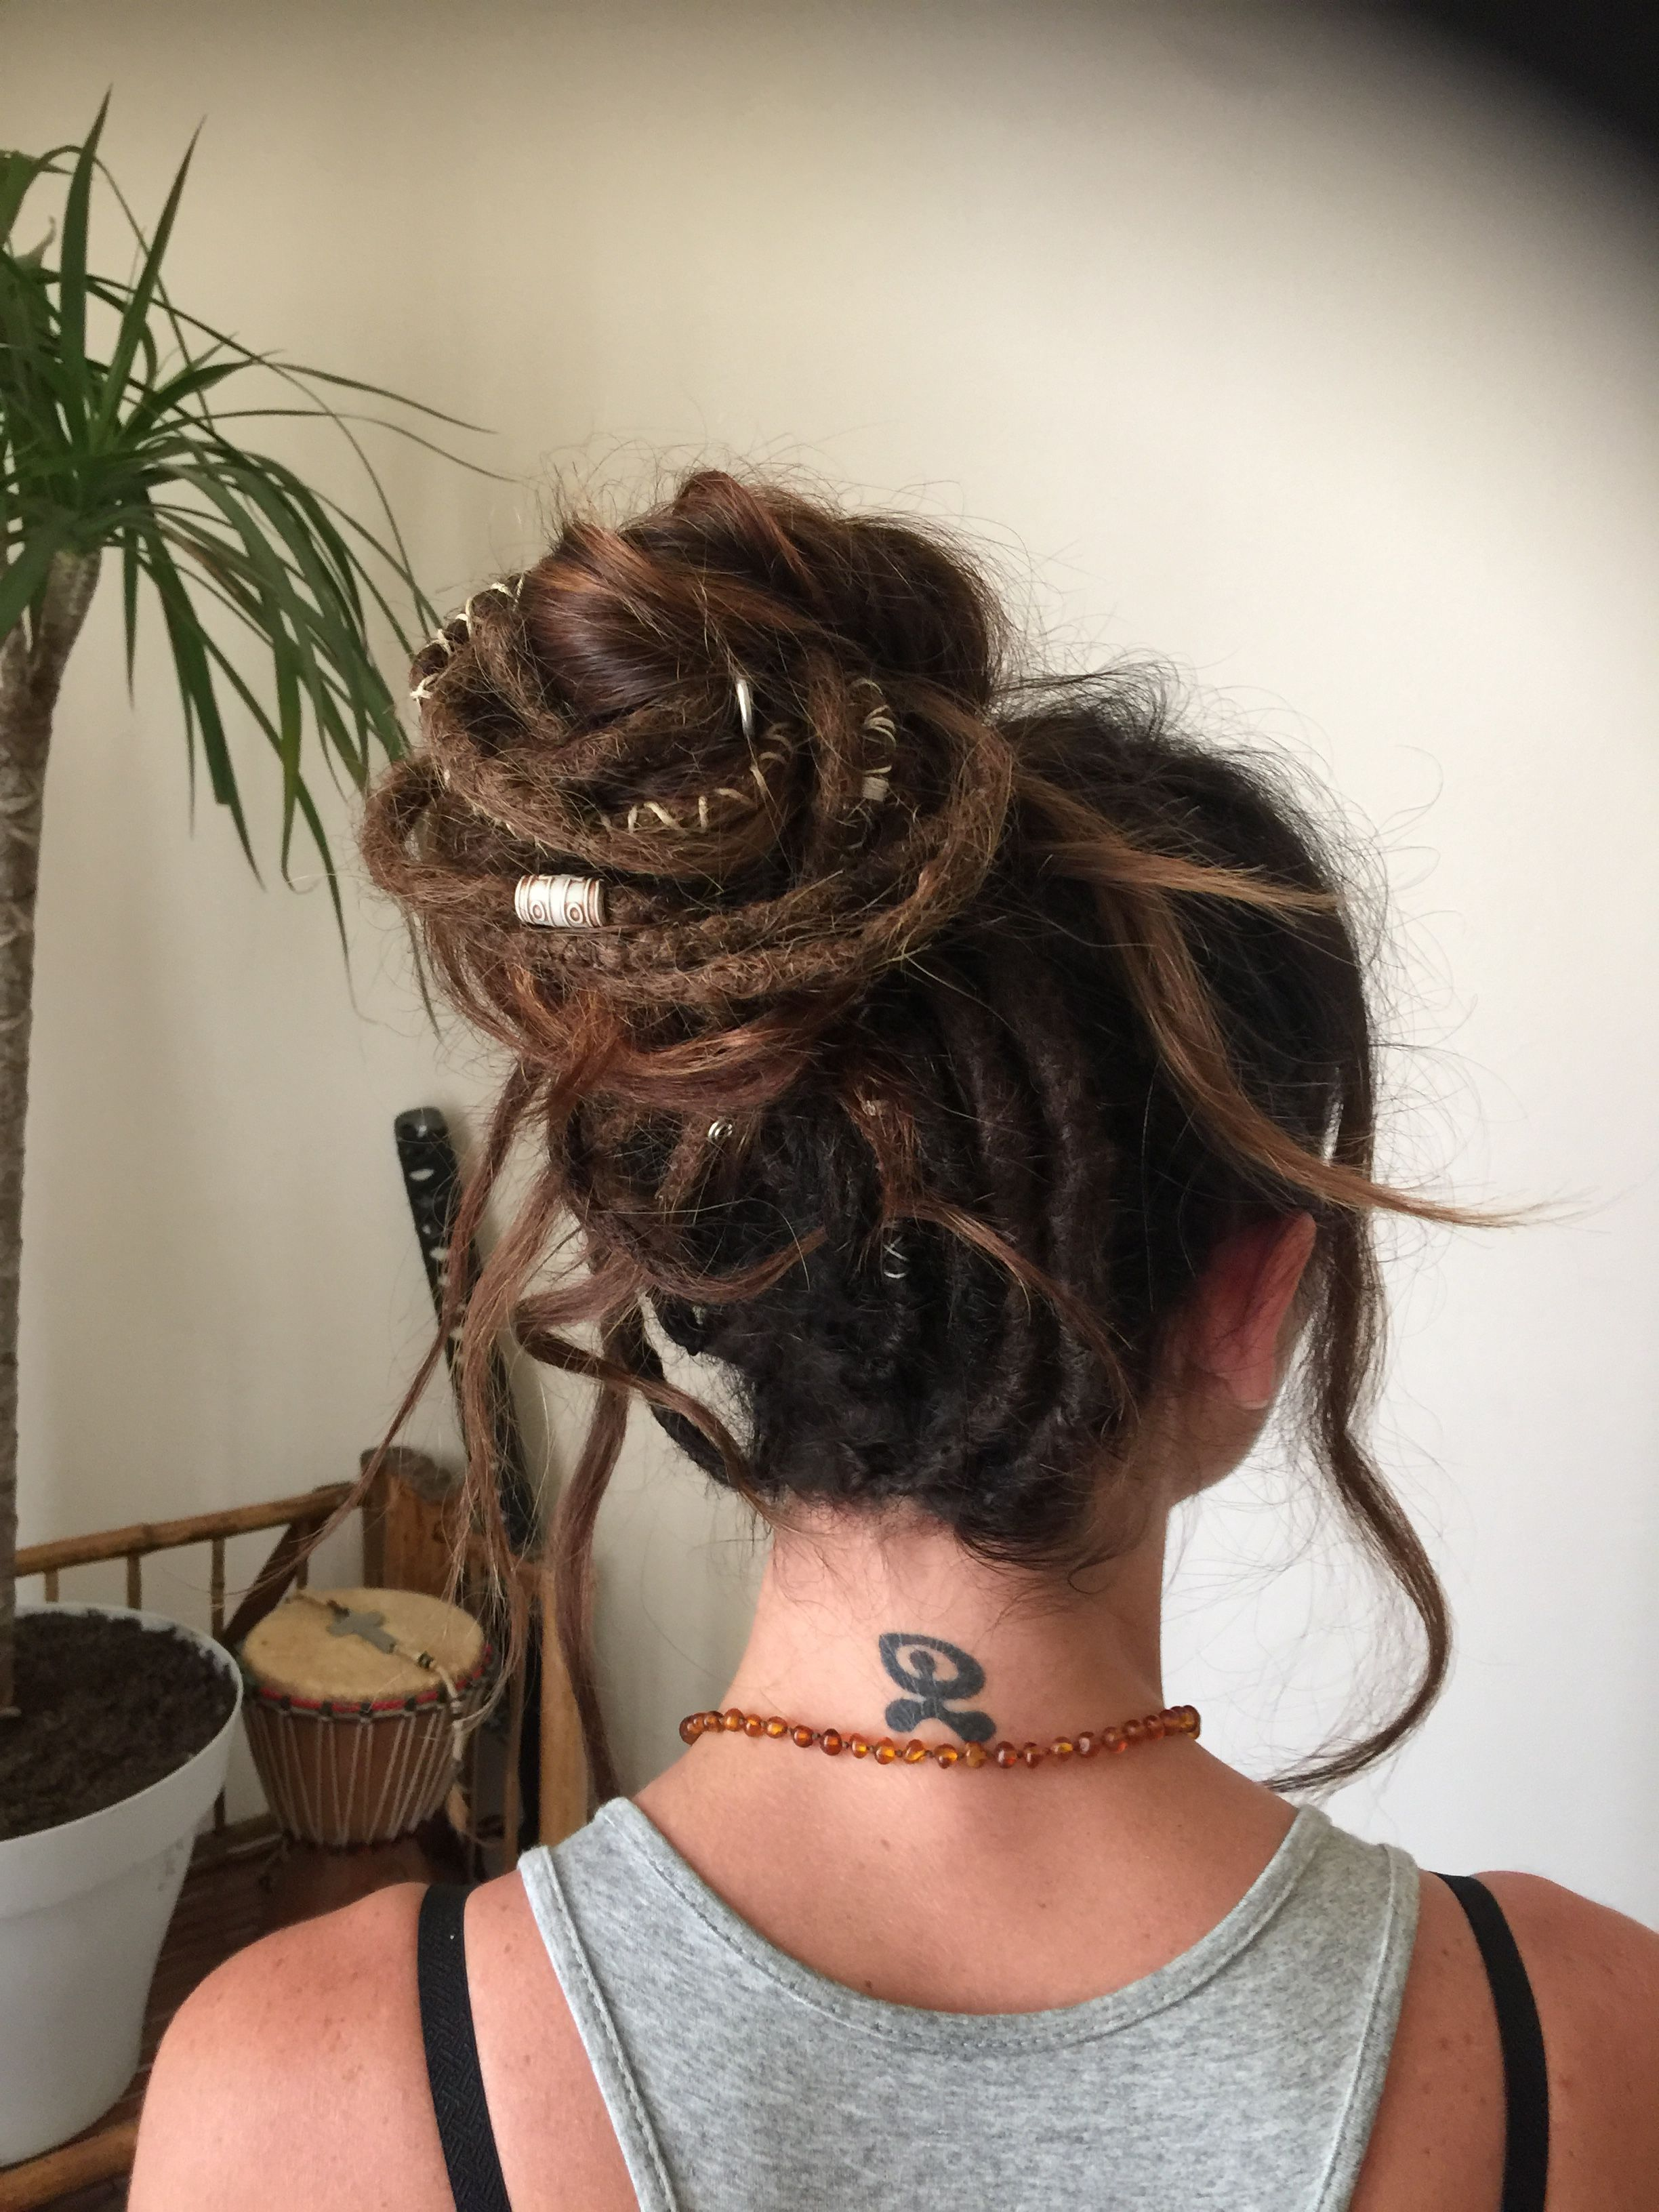 #chignons #dreads #inspiration by Lisah in 2020 | Dread hairstyles, Hair styles, Hippie hair